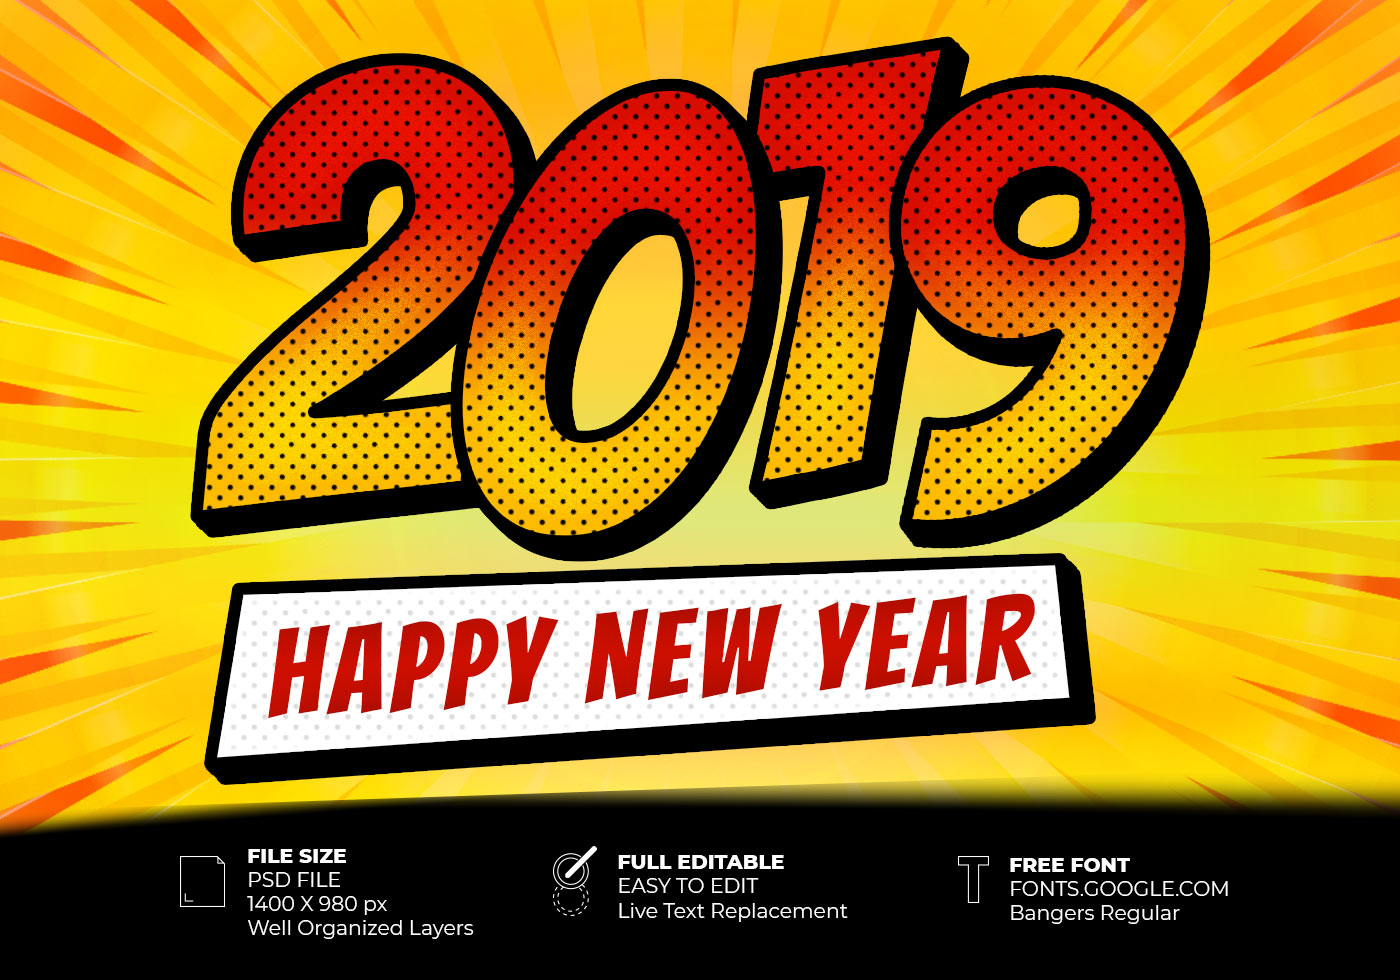 2019 Happy New Year Pop Art Style Text Effect - Free ...